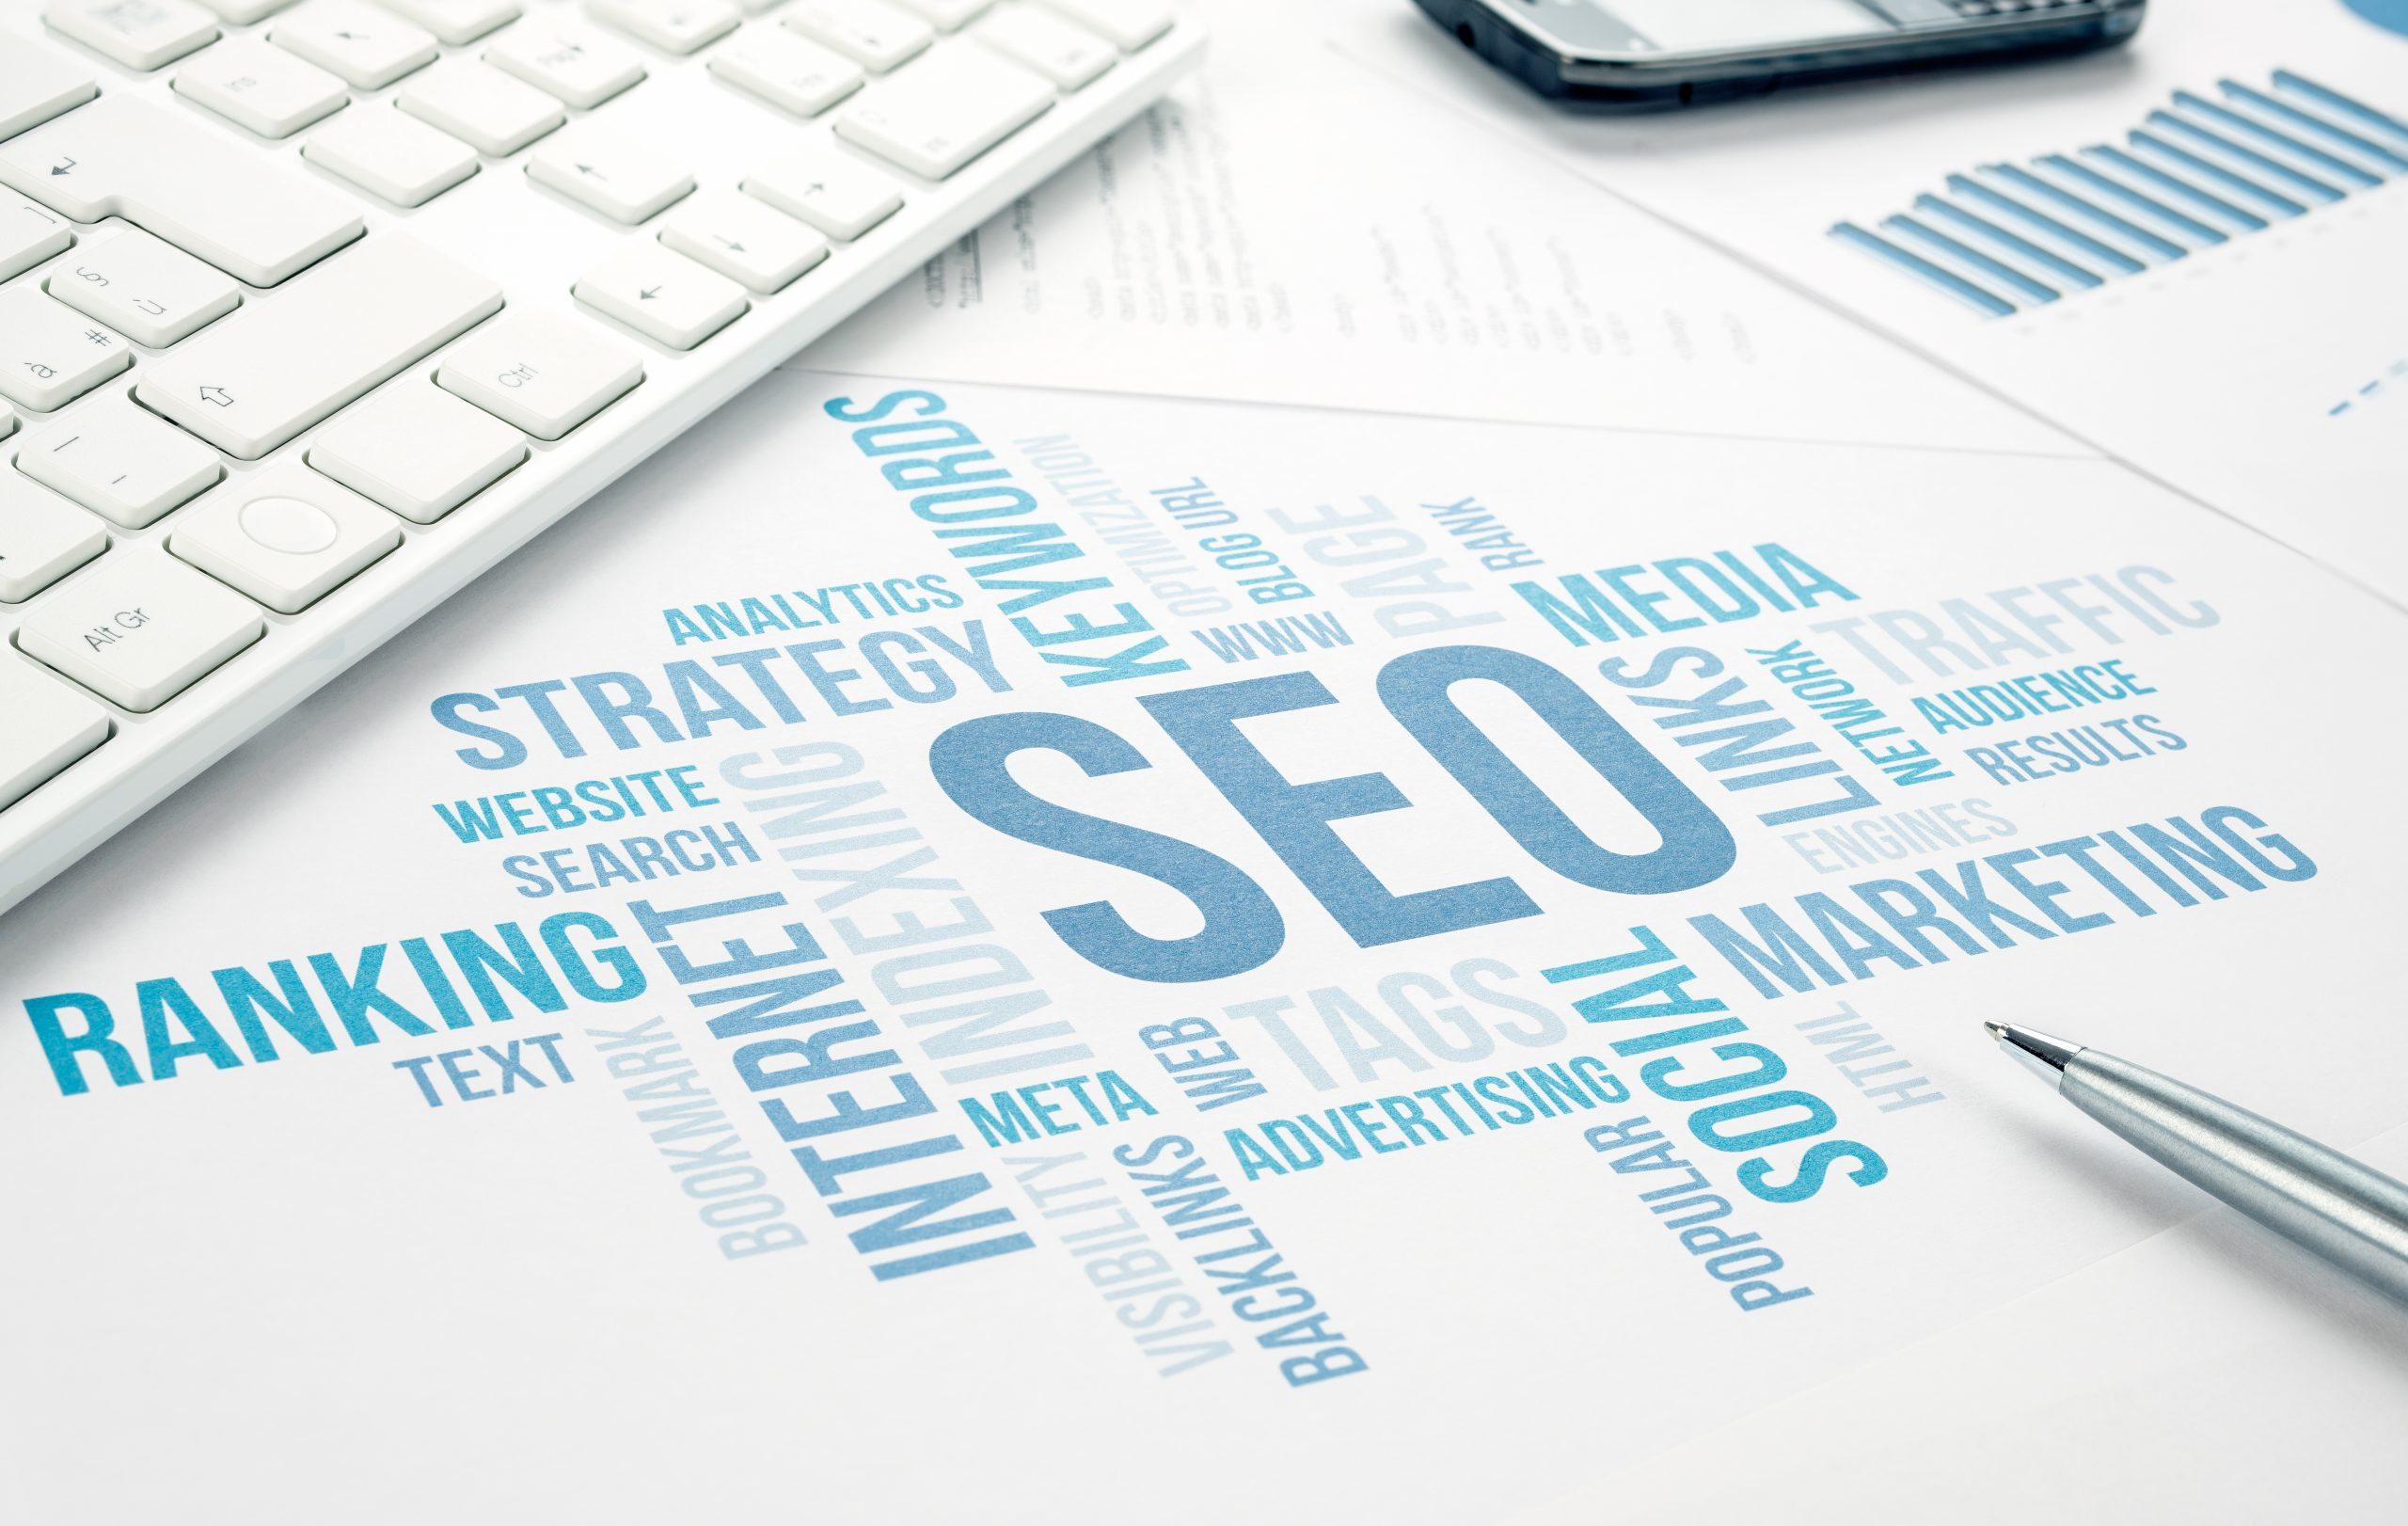 Local SEO and its importance